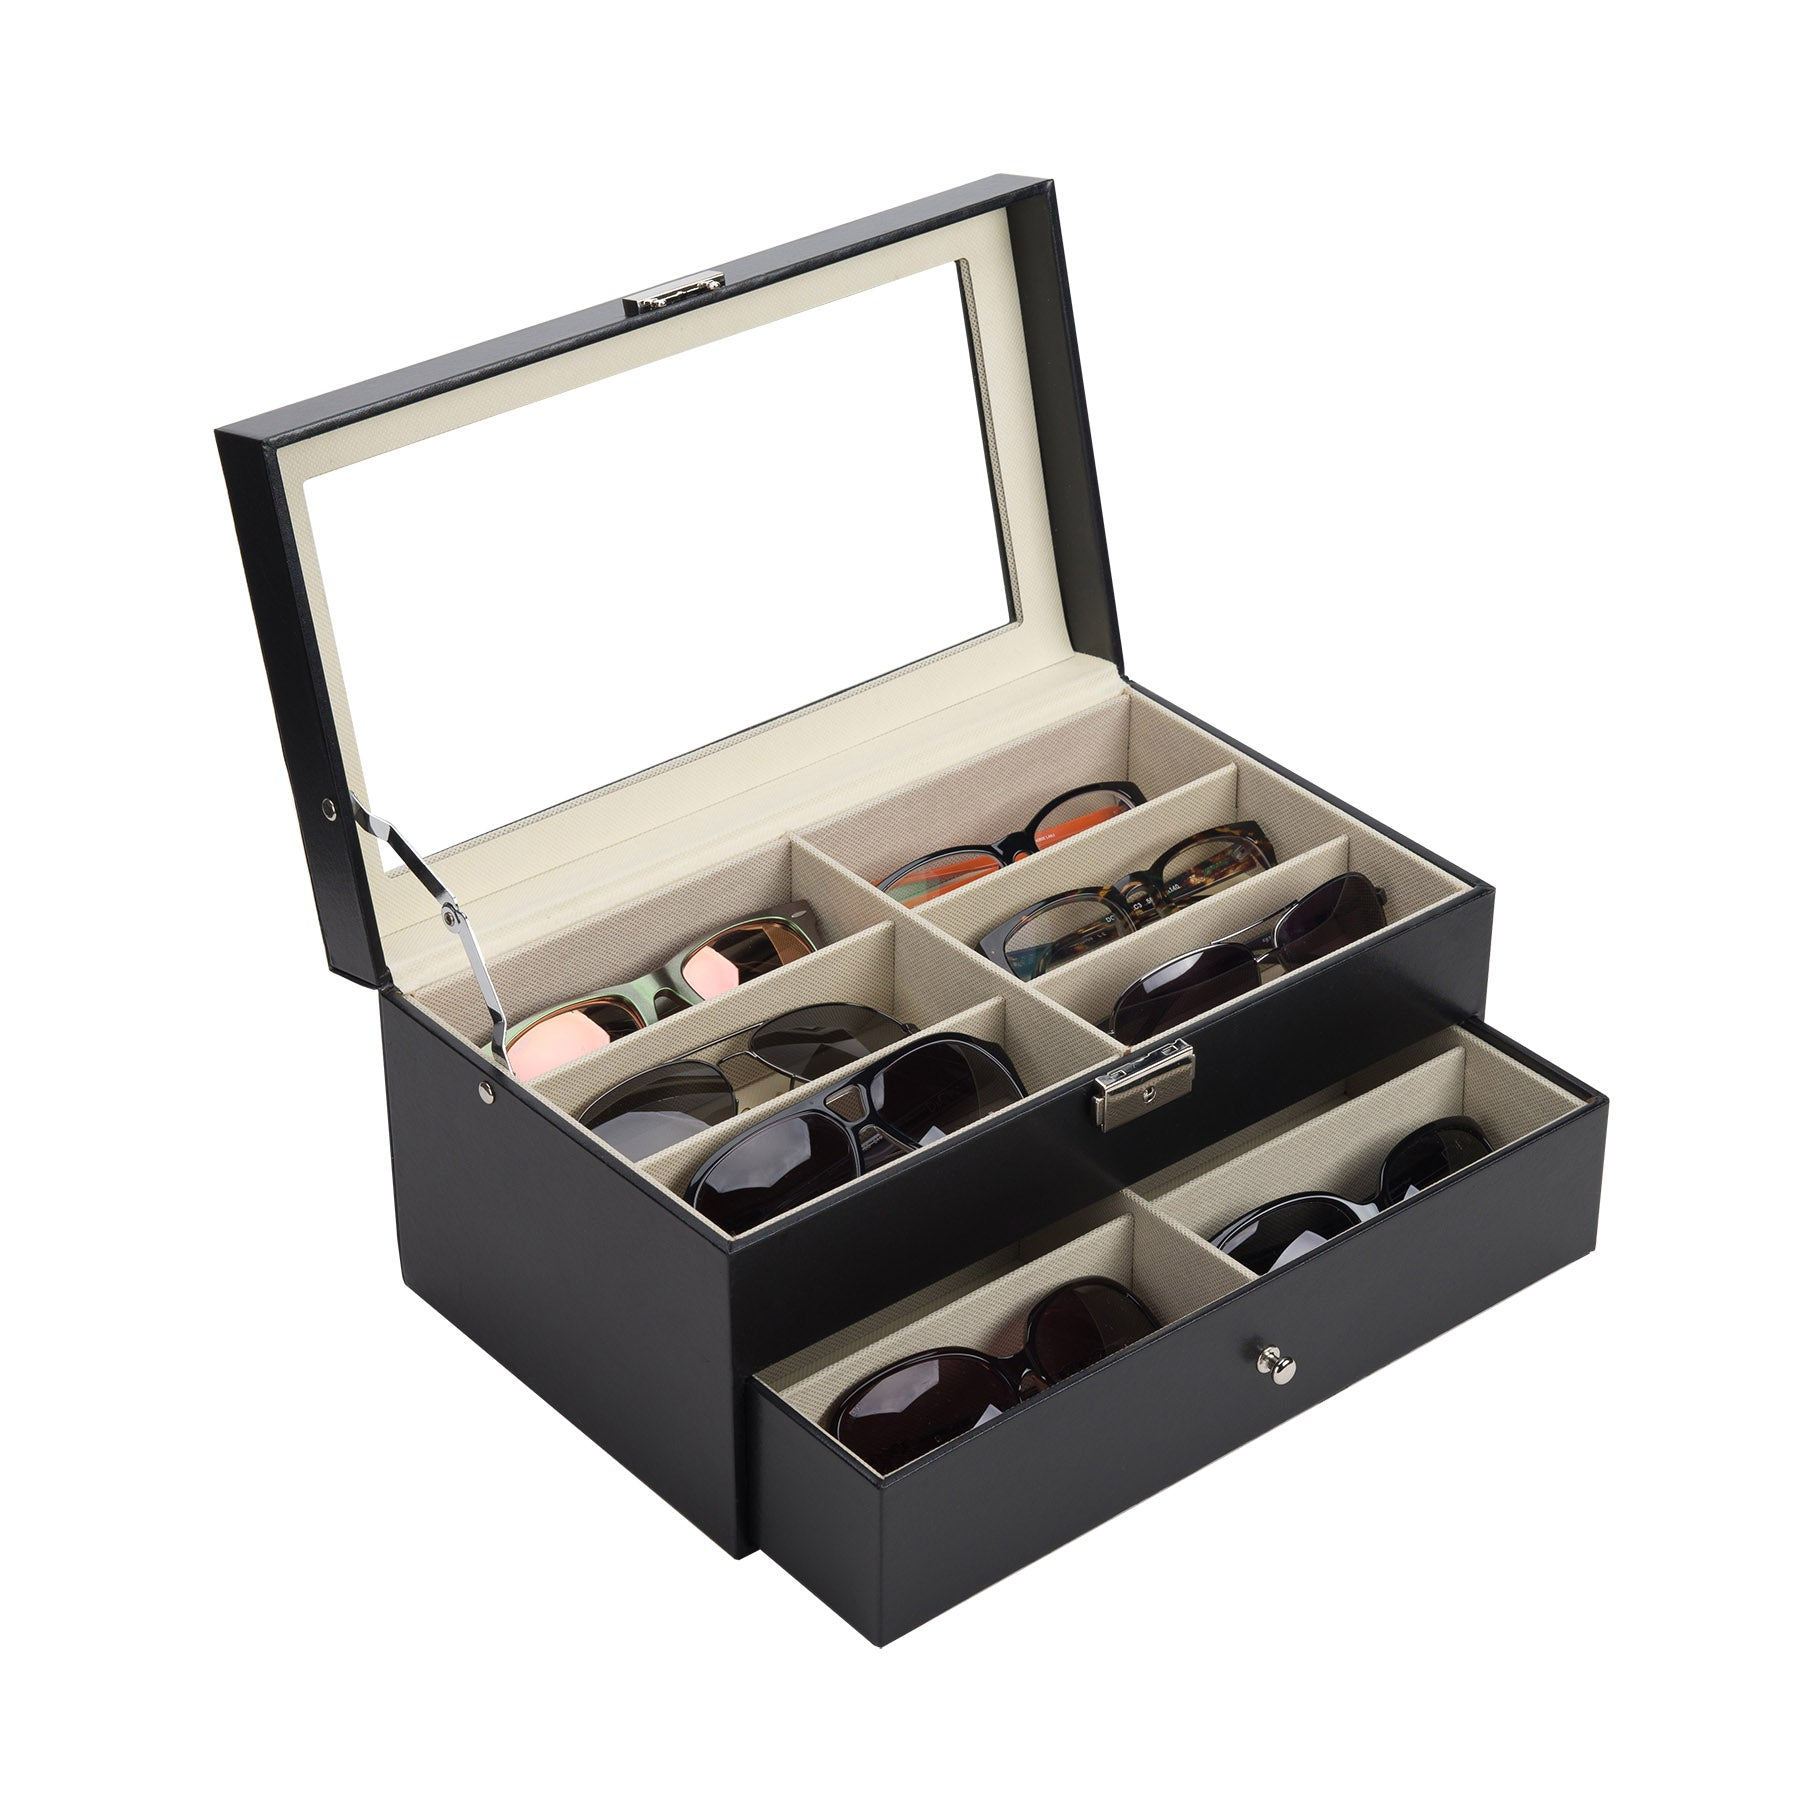 Sunglasses Organizer with 12 Compartments - Kaiezen